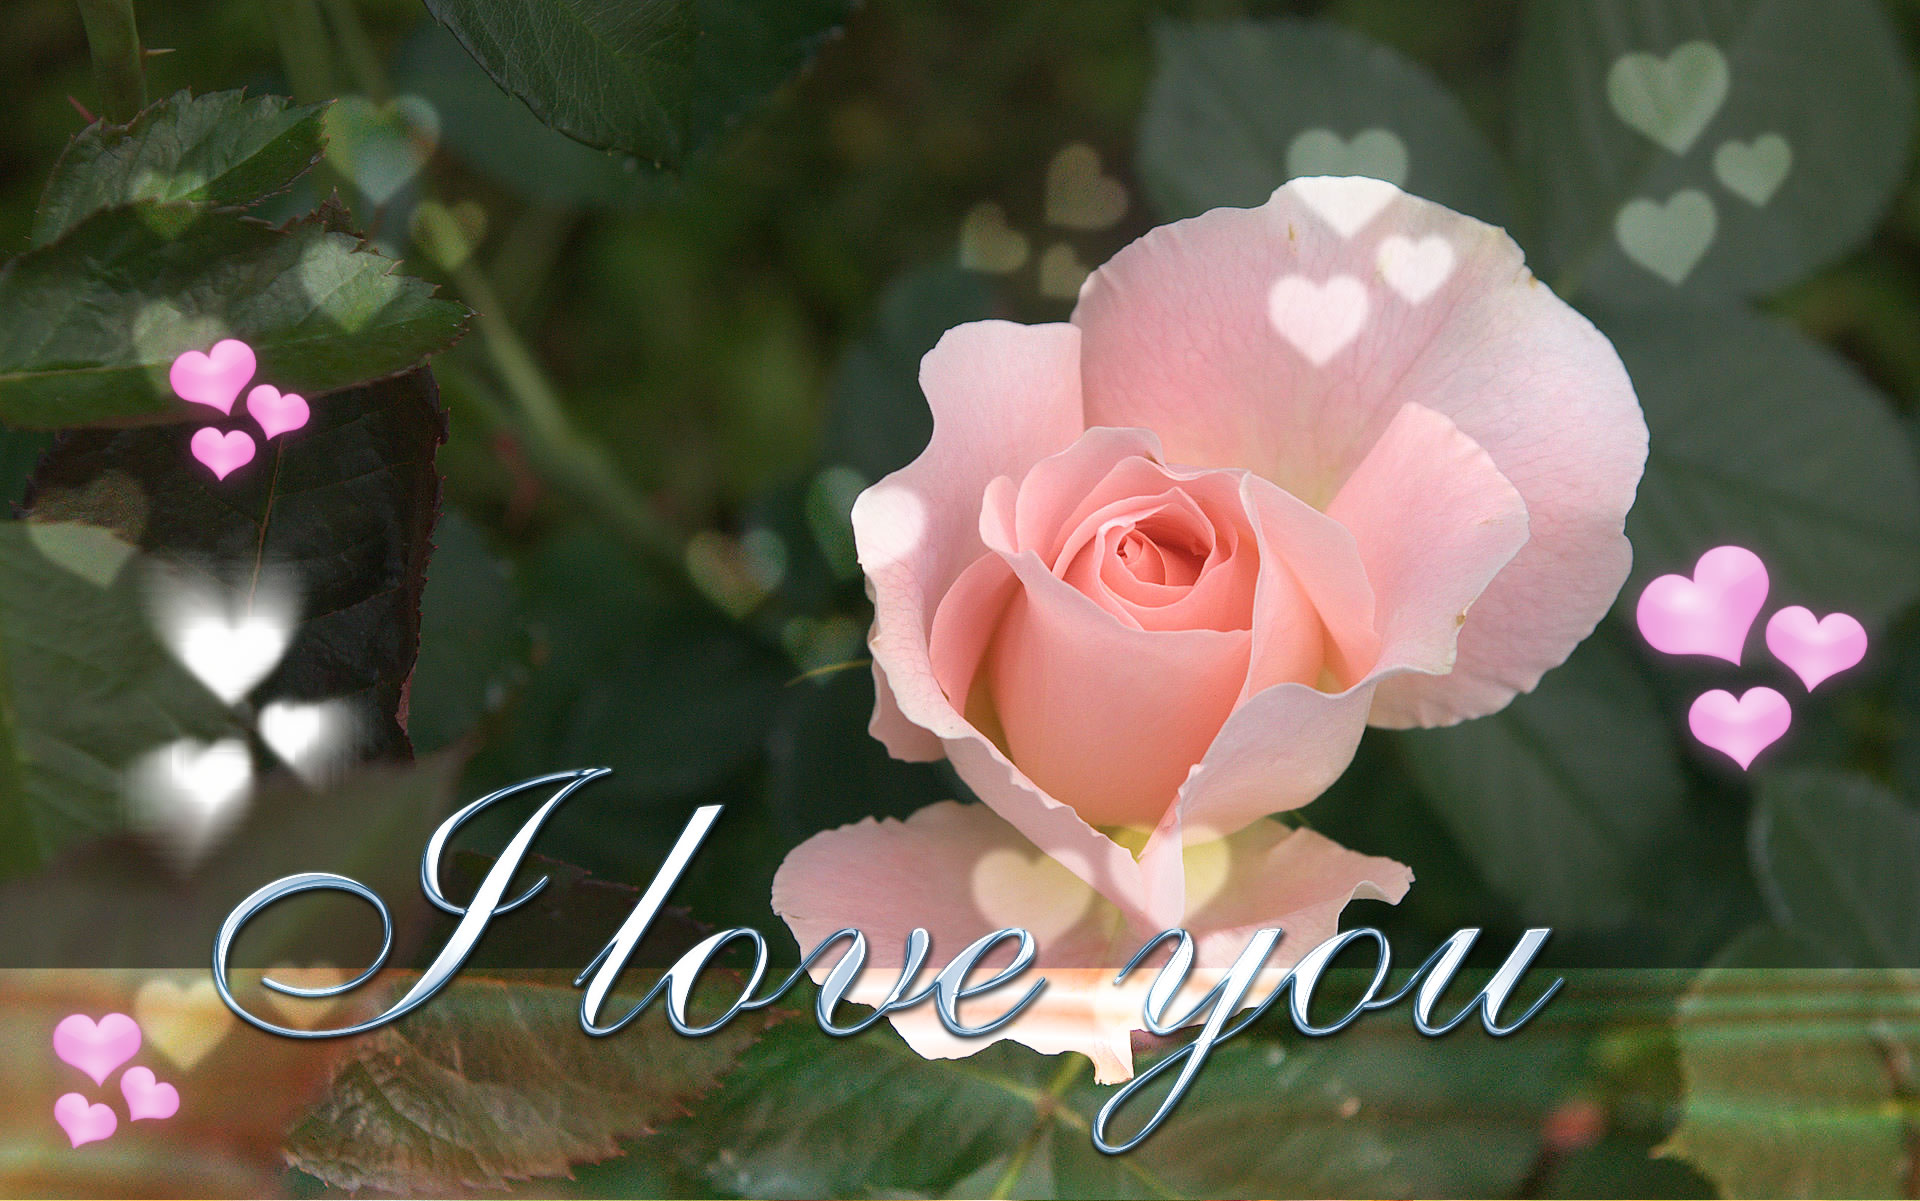 sweet i love you wallpaper in high resolution 1920x1200 pixel.